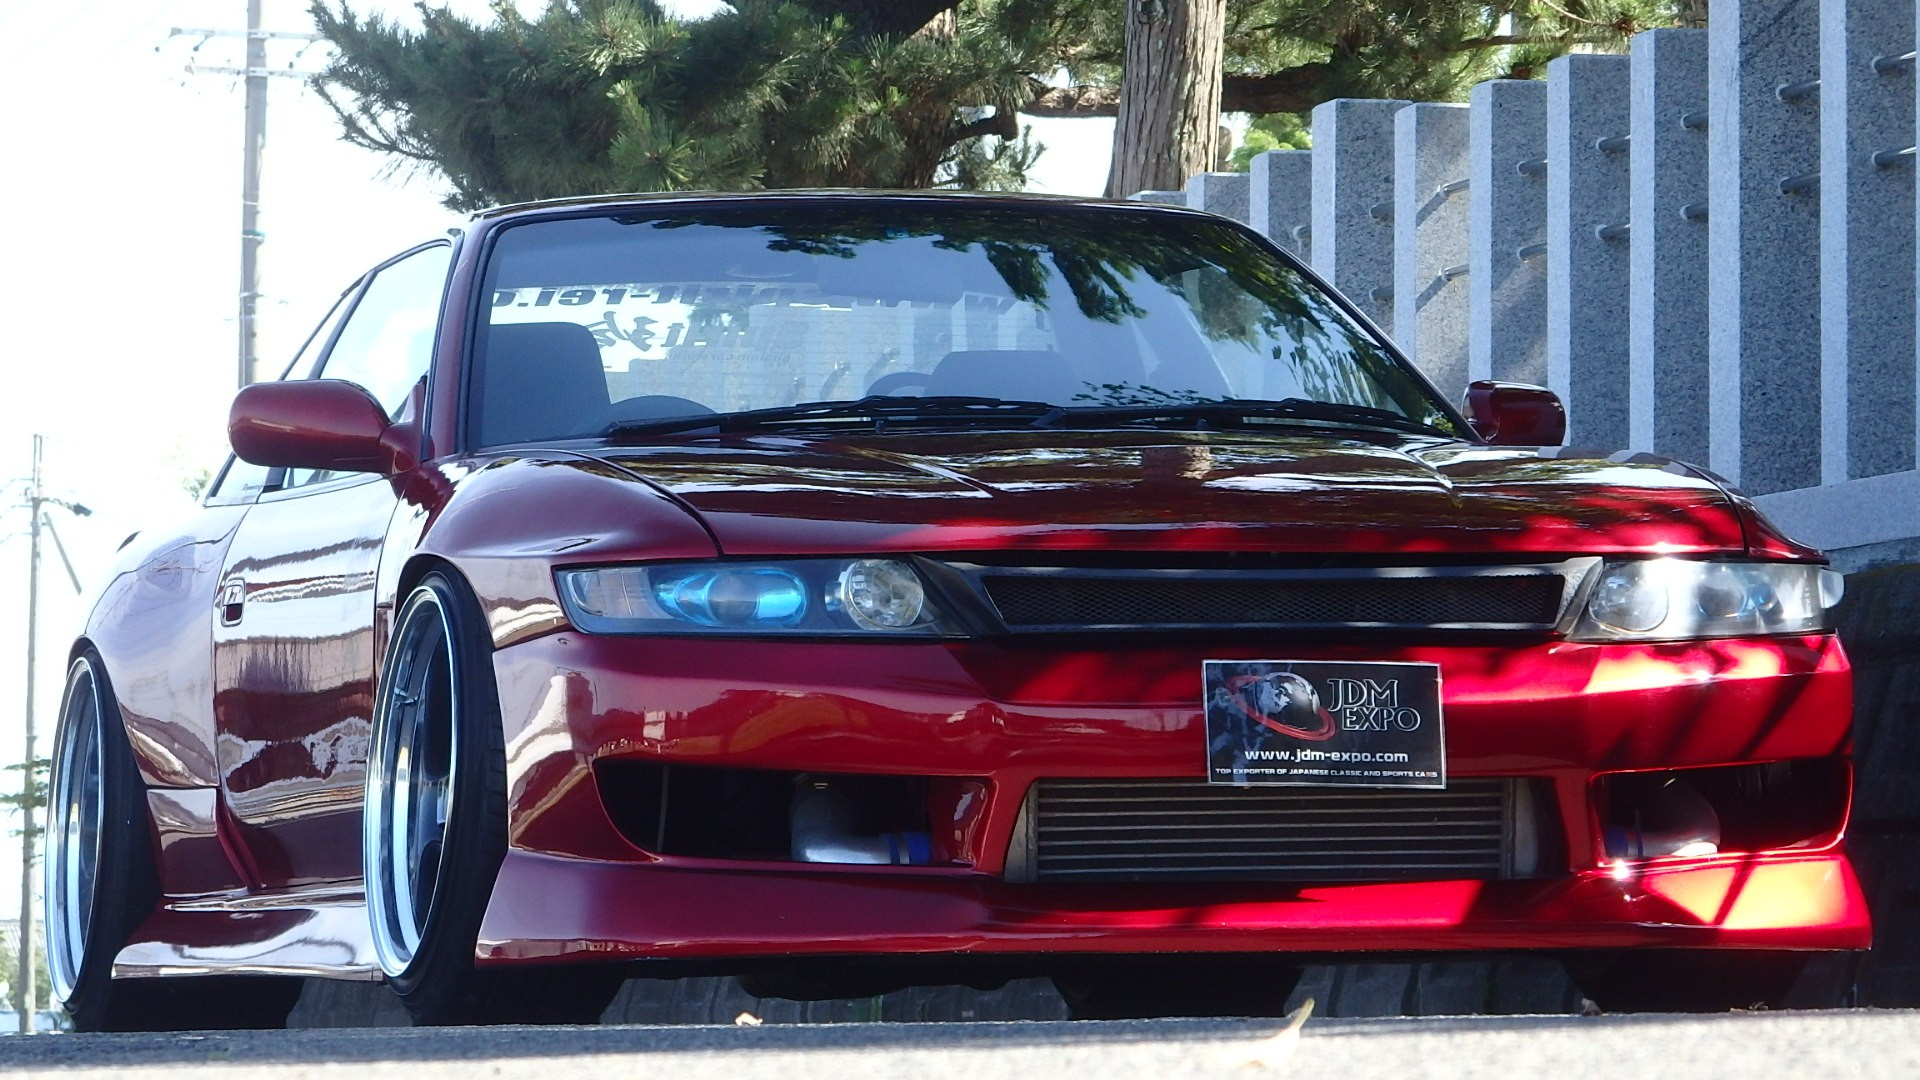 nissan silvia s13 for sale import jdm cars to usa canada